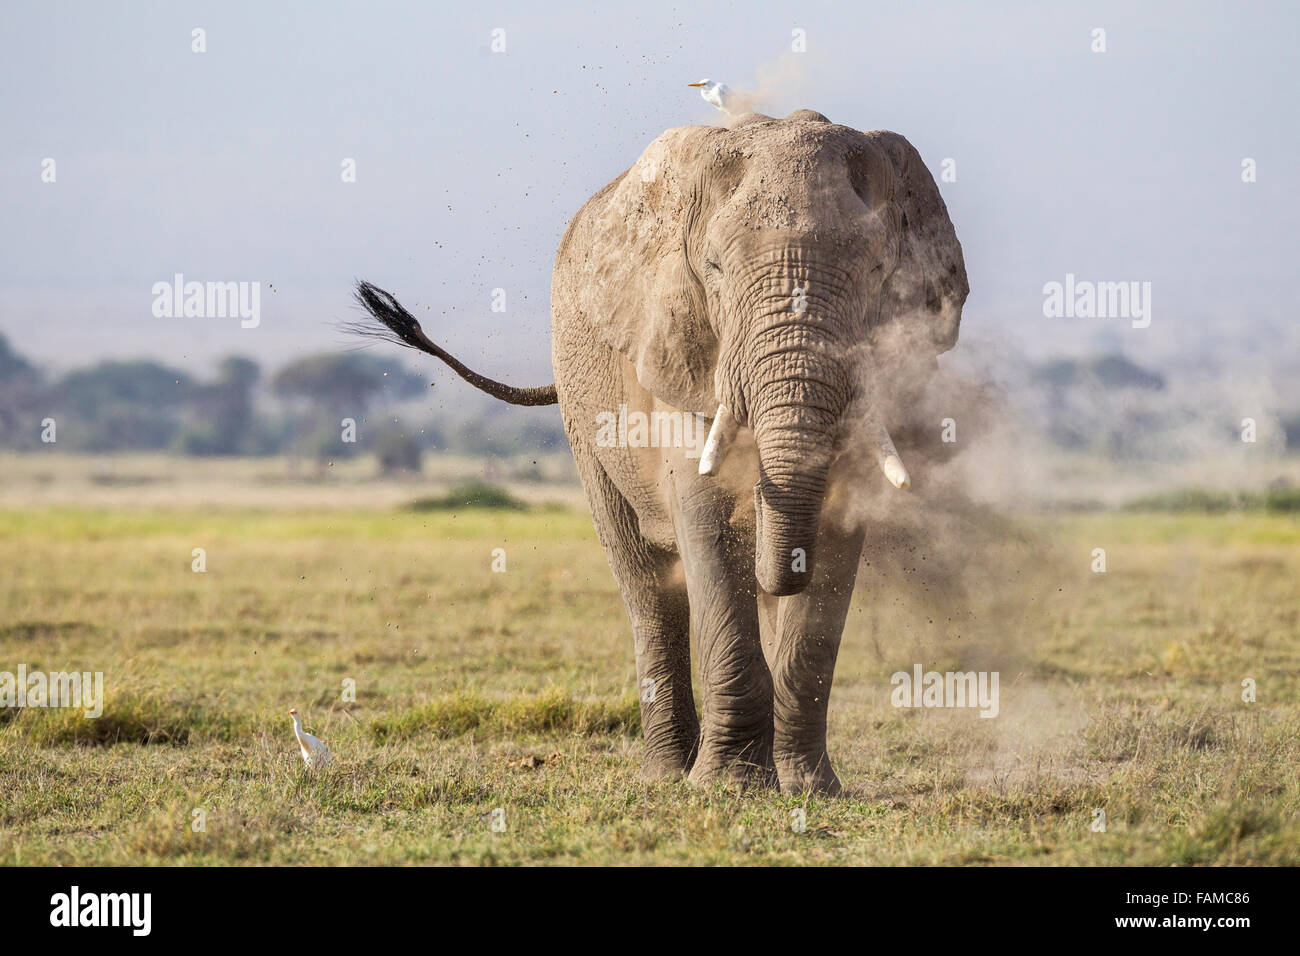 An elephant taking a dust bath in the Amboseli National Park, Kenya, East Africa - Stock Image